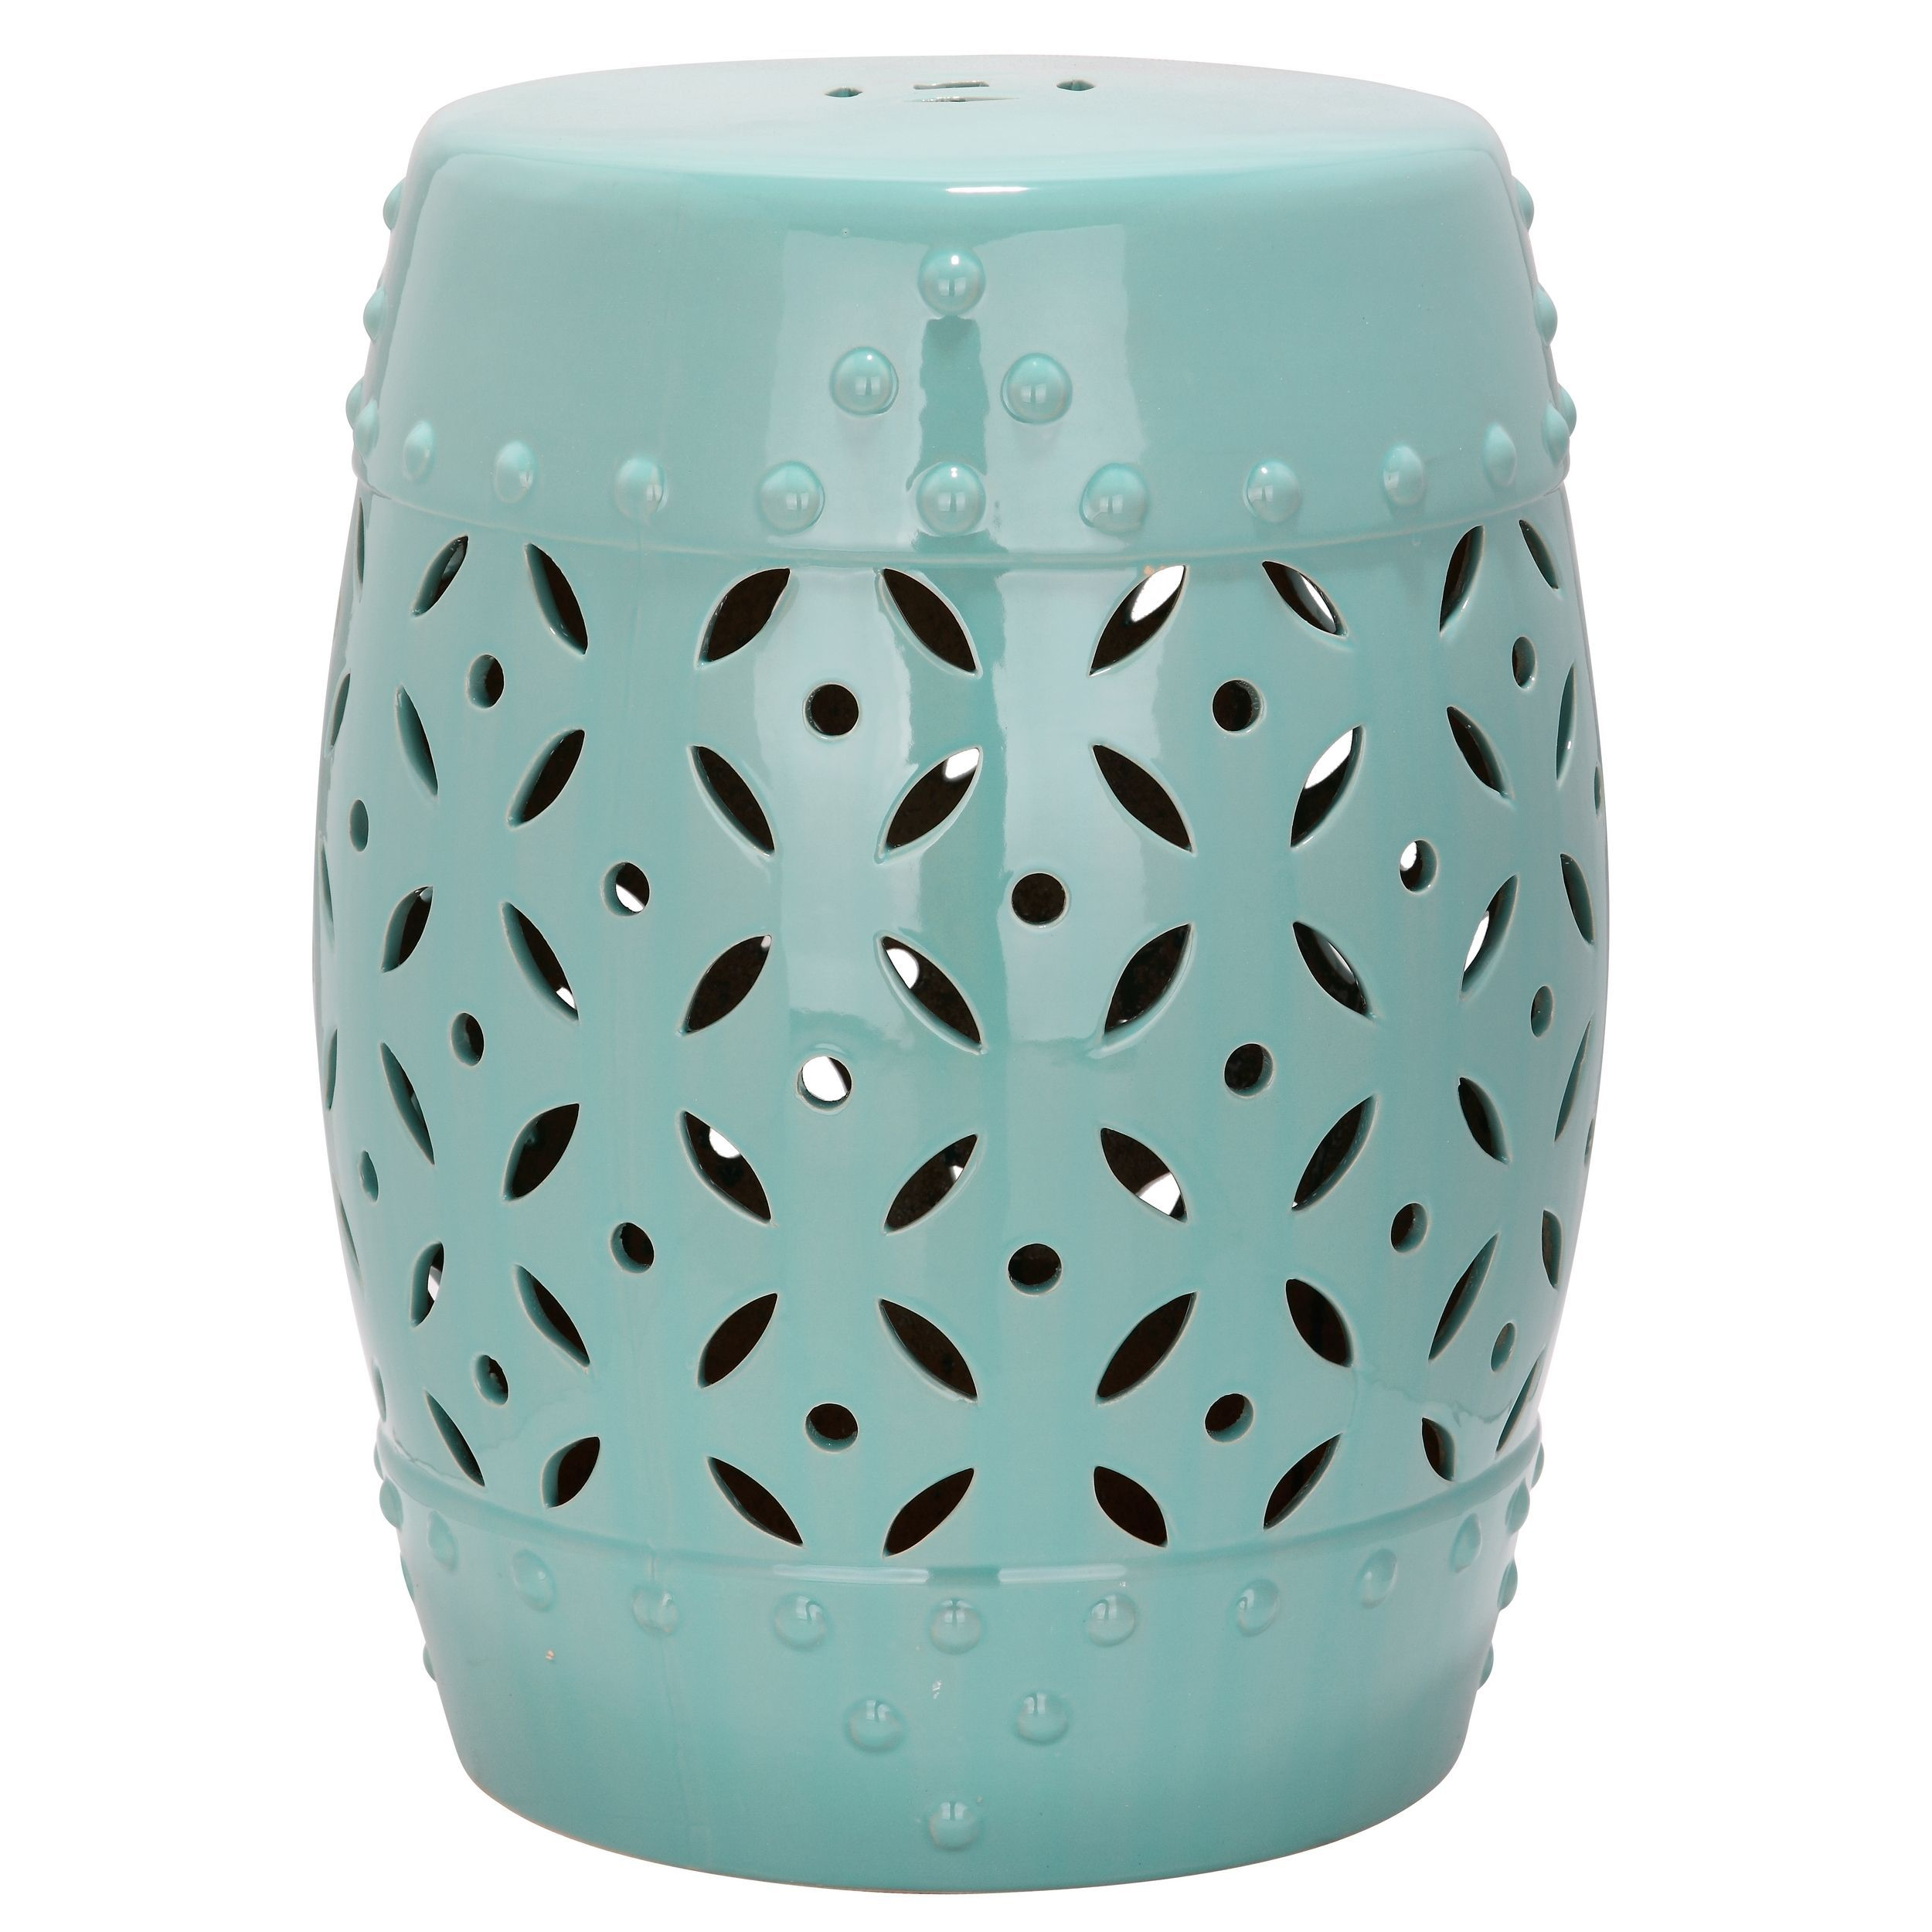 Awesome Safavieh Paradise Harmony Light Blue Ceramic Garden Stool Gmtry Best Dining Table And Chair Ideas Images Gmtryco